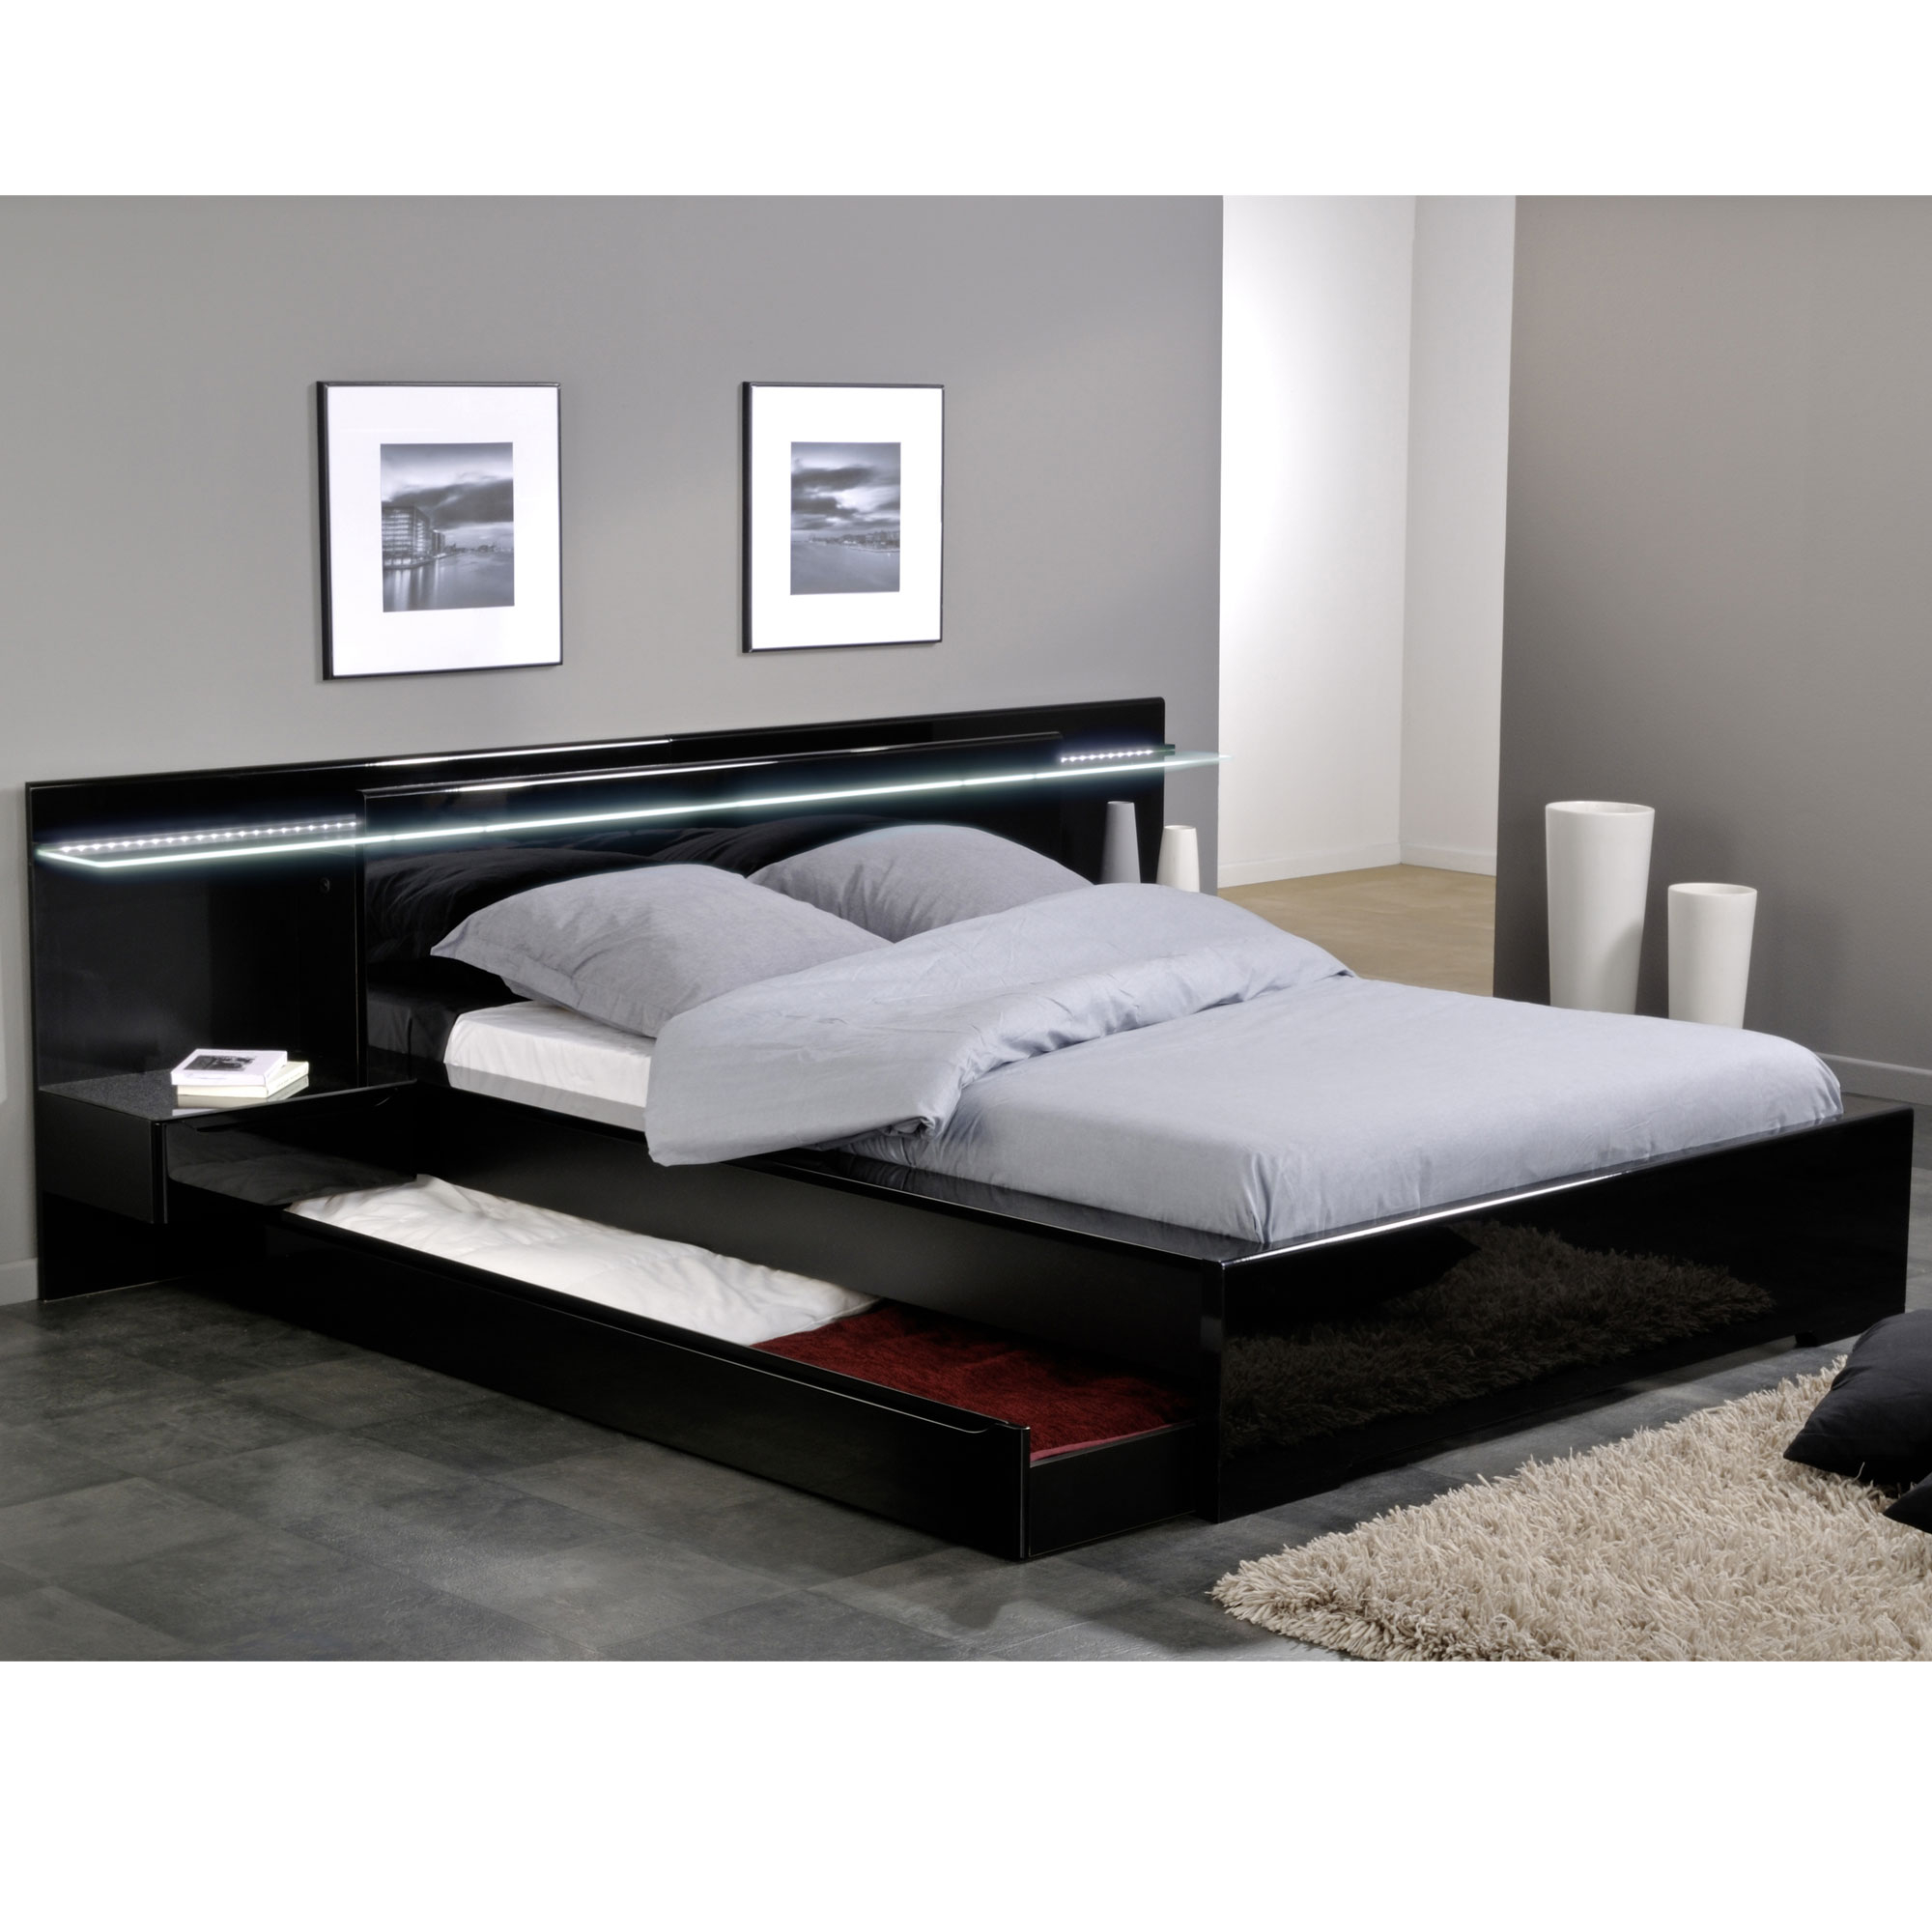 ensemble lit environnement lumineux 160 x 200 avec 2 chevets int gr s amber laqu noir. Black Bedroom Furniture Sets. Home Design Ideas